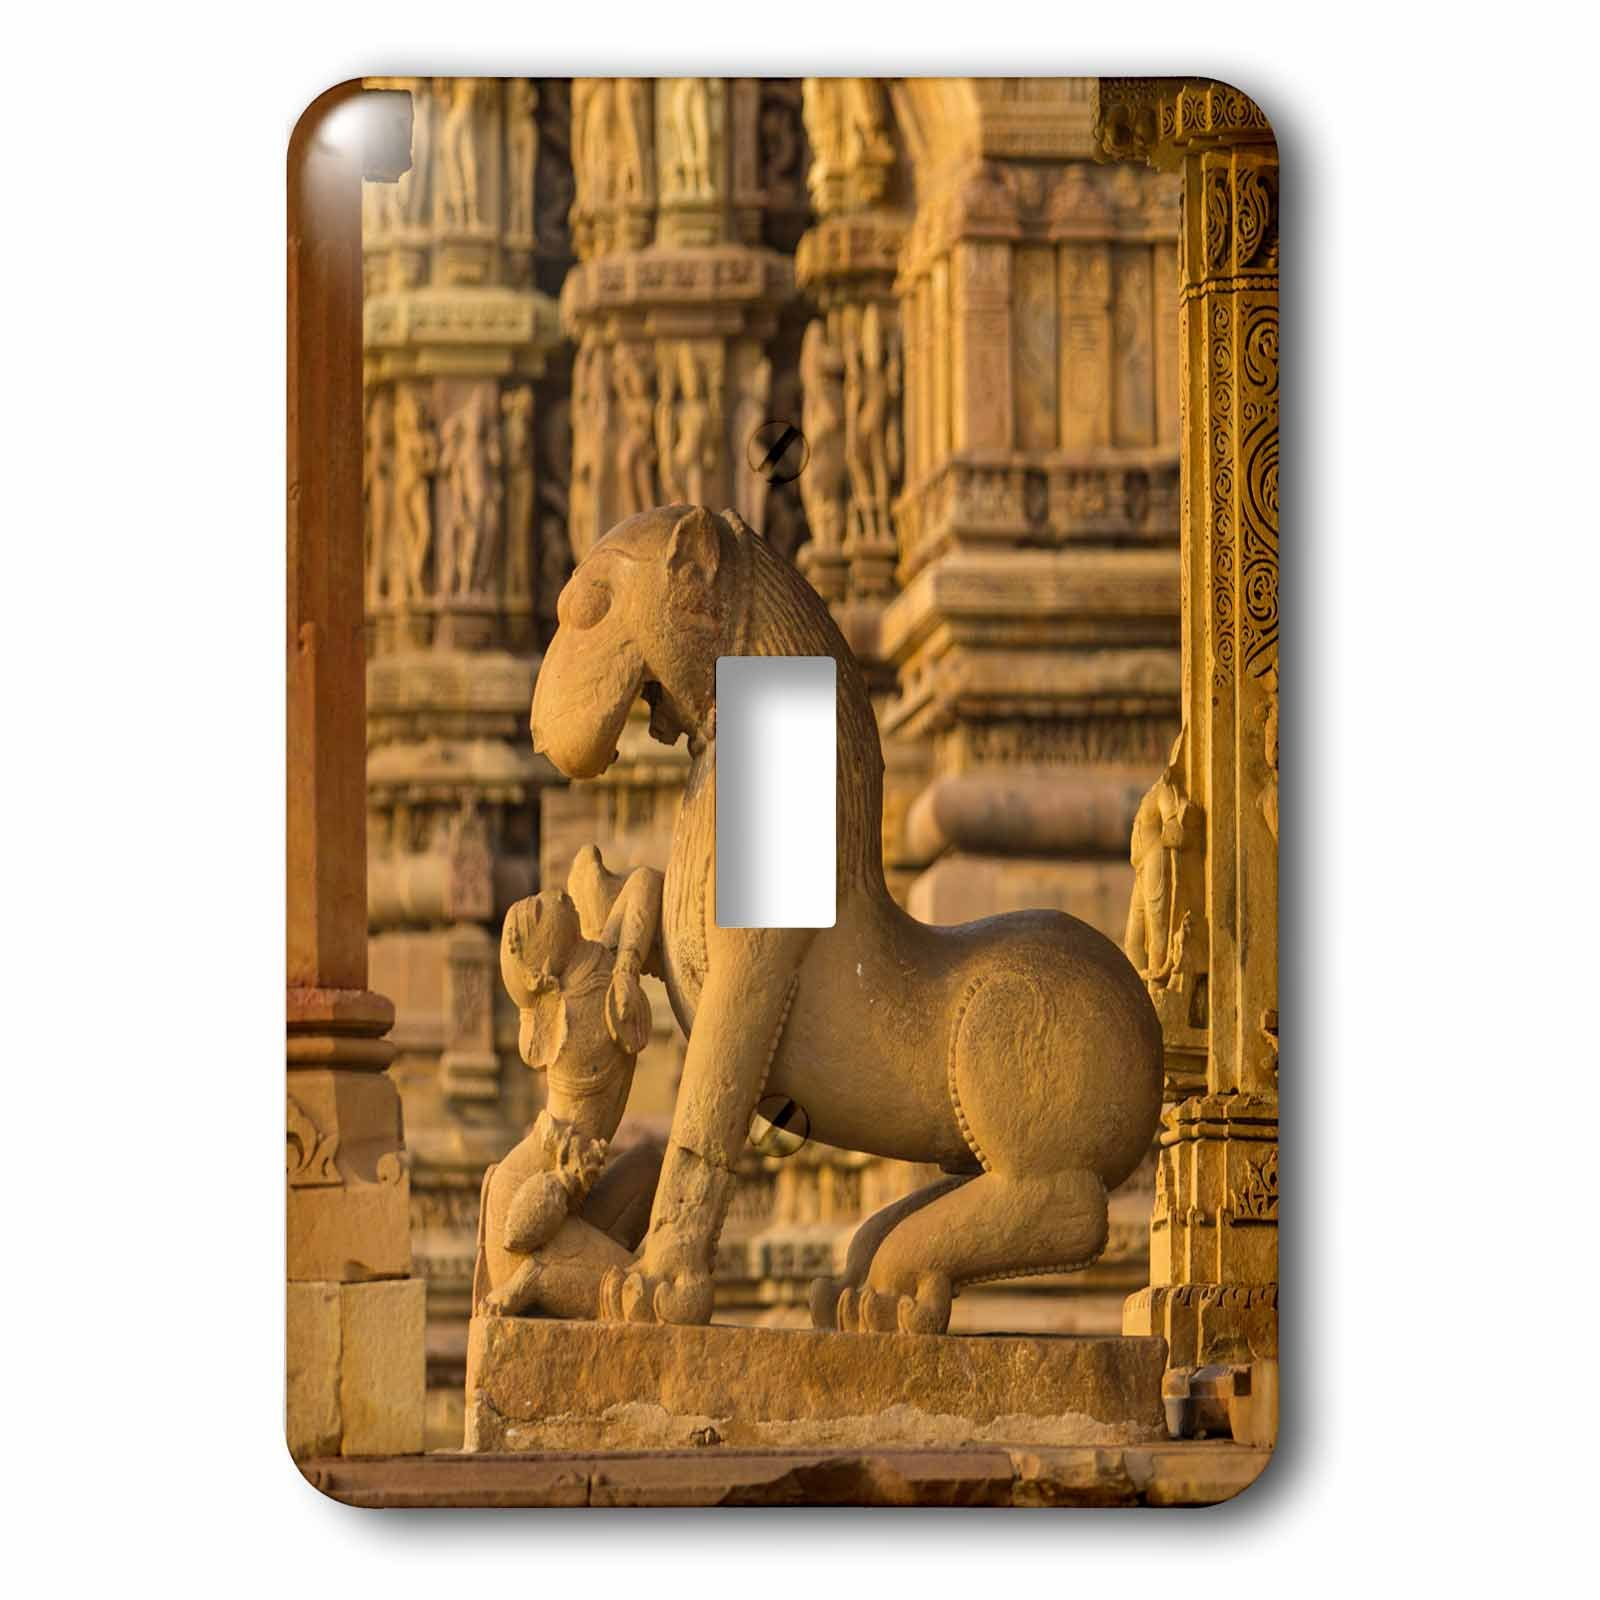 3dRose Danita Delimont - Temples - India. Hindu temples at Khajuraho, Woman with a lion. - Light Switch Covers - single toggle switch (lsp_276794_1)